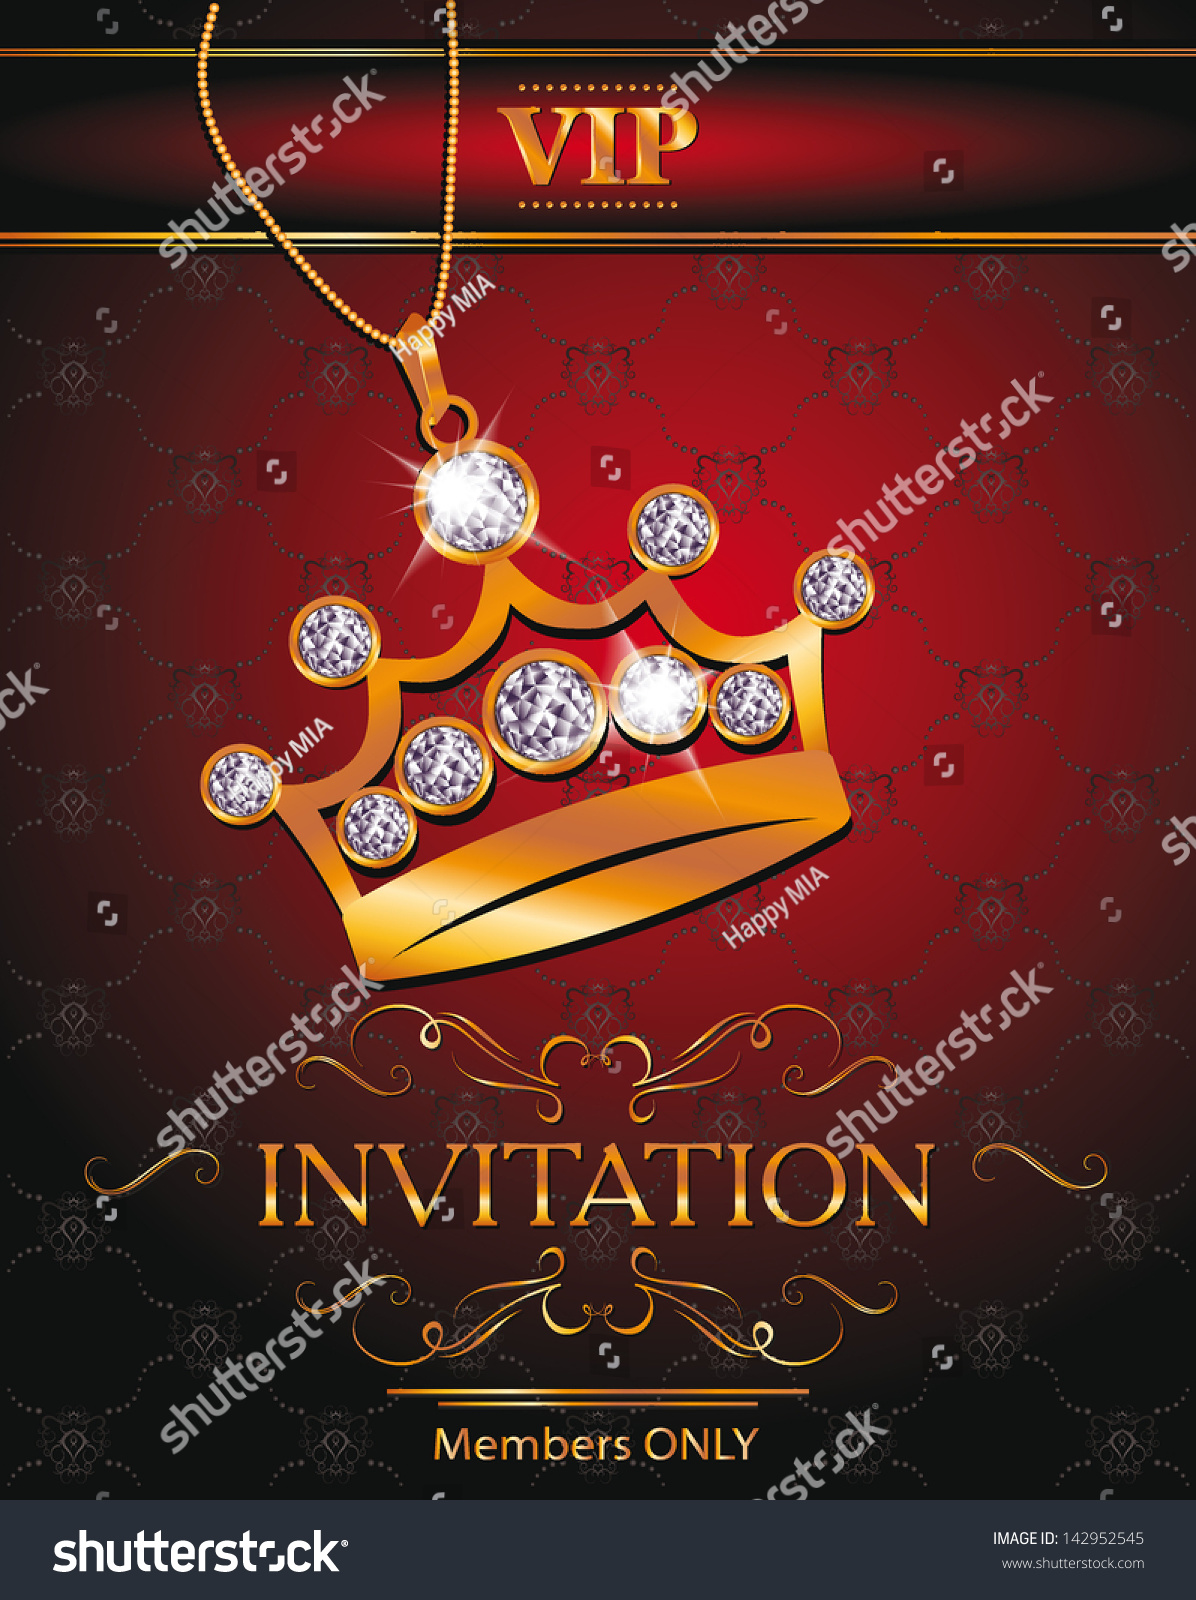 Invitation Vip Card Gold Crown Shaped Stock Vector